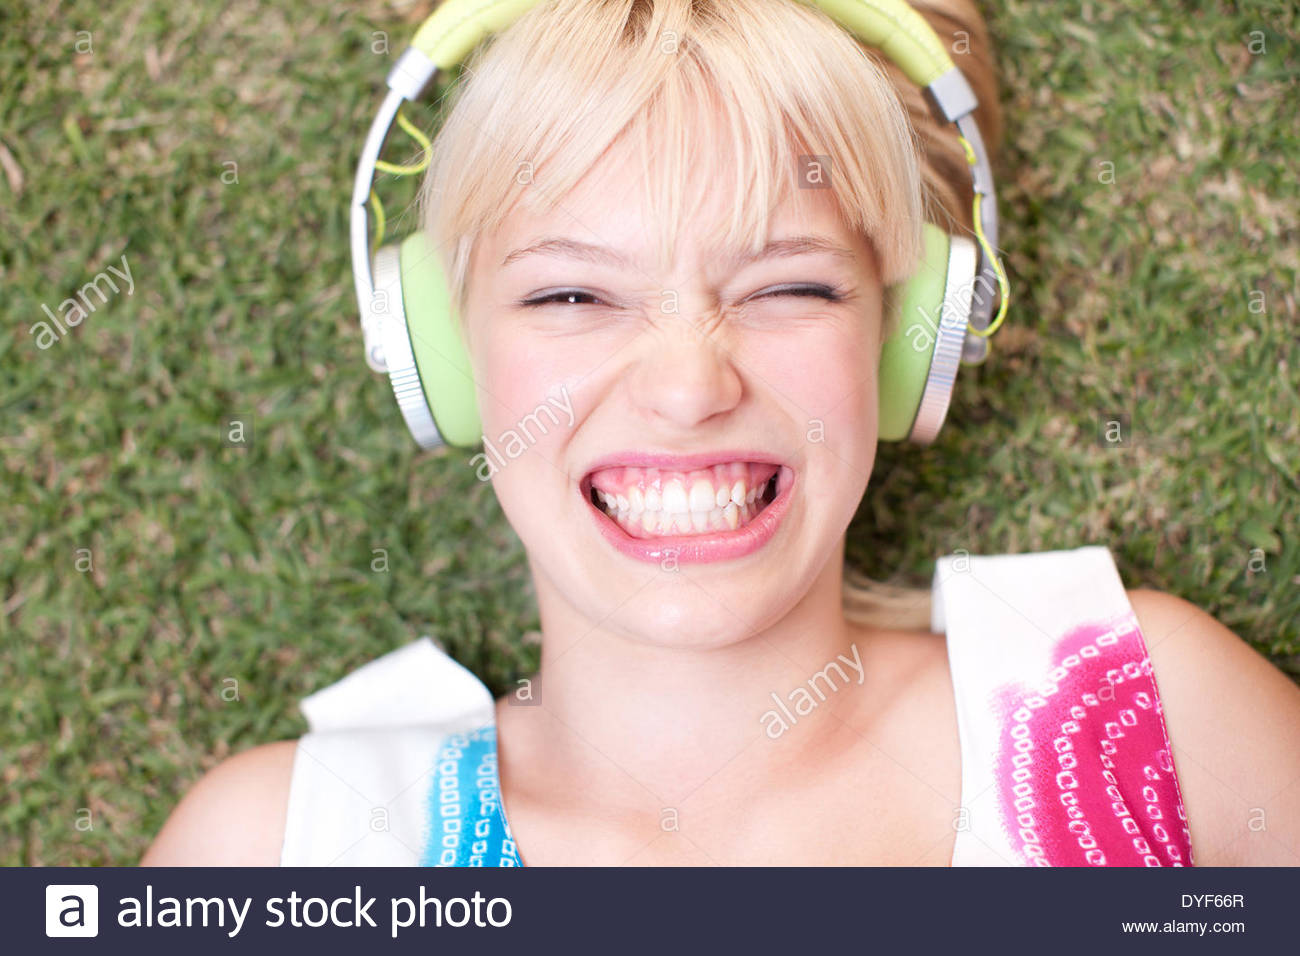 Woman laying on grass listening to headphones - Stock Image